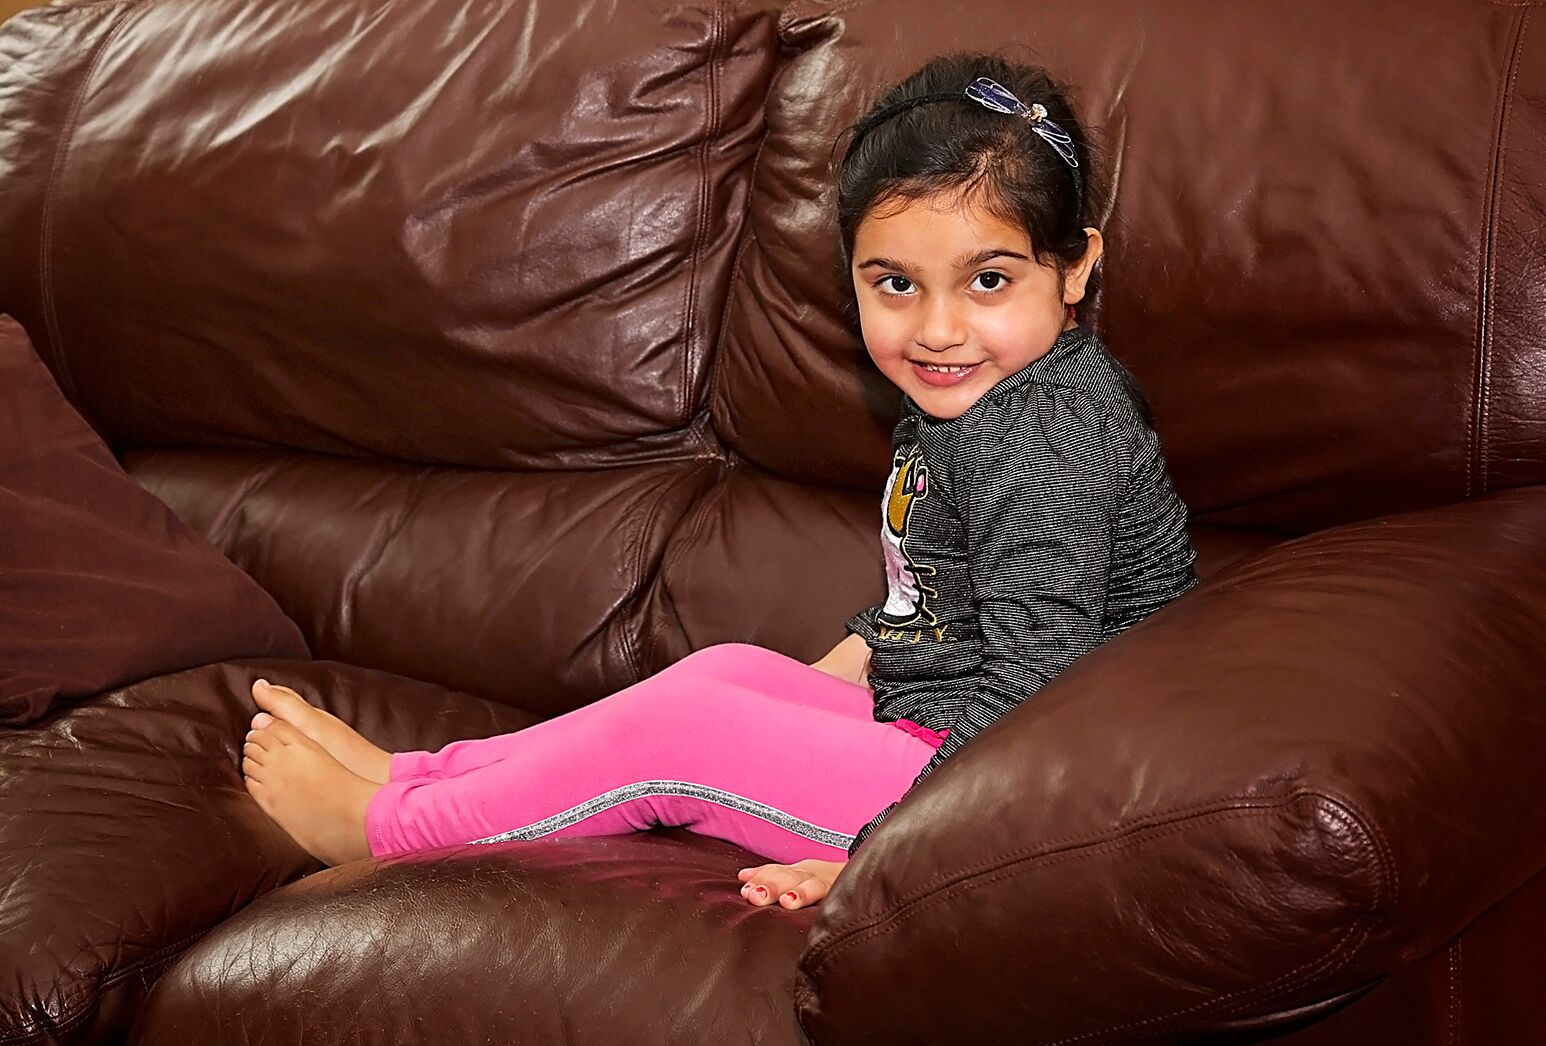 Young girl relaxes on the couch in her home.